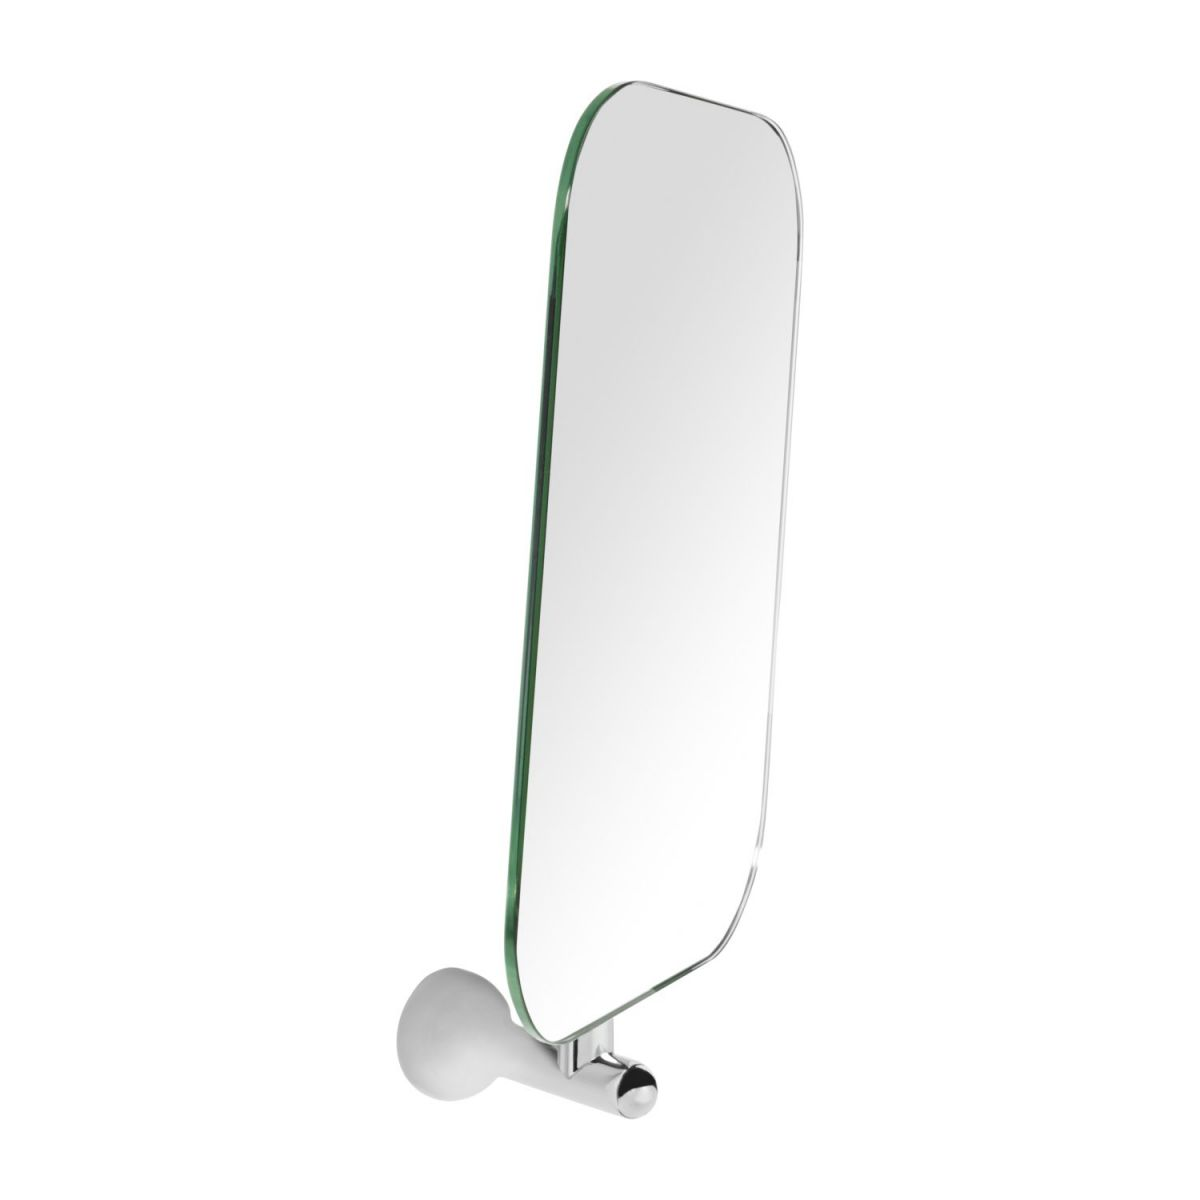 Mirror 20cm made in stainless steel n°2